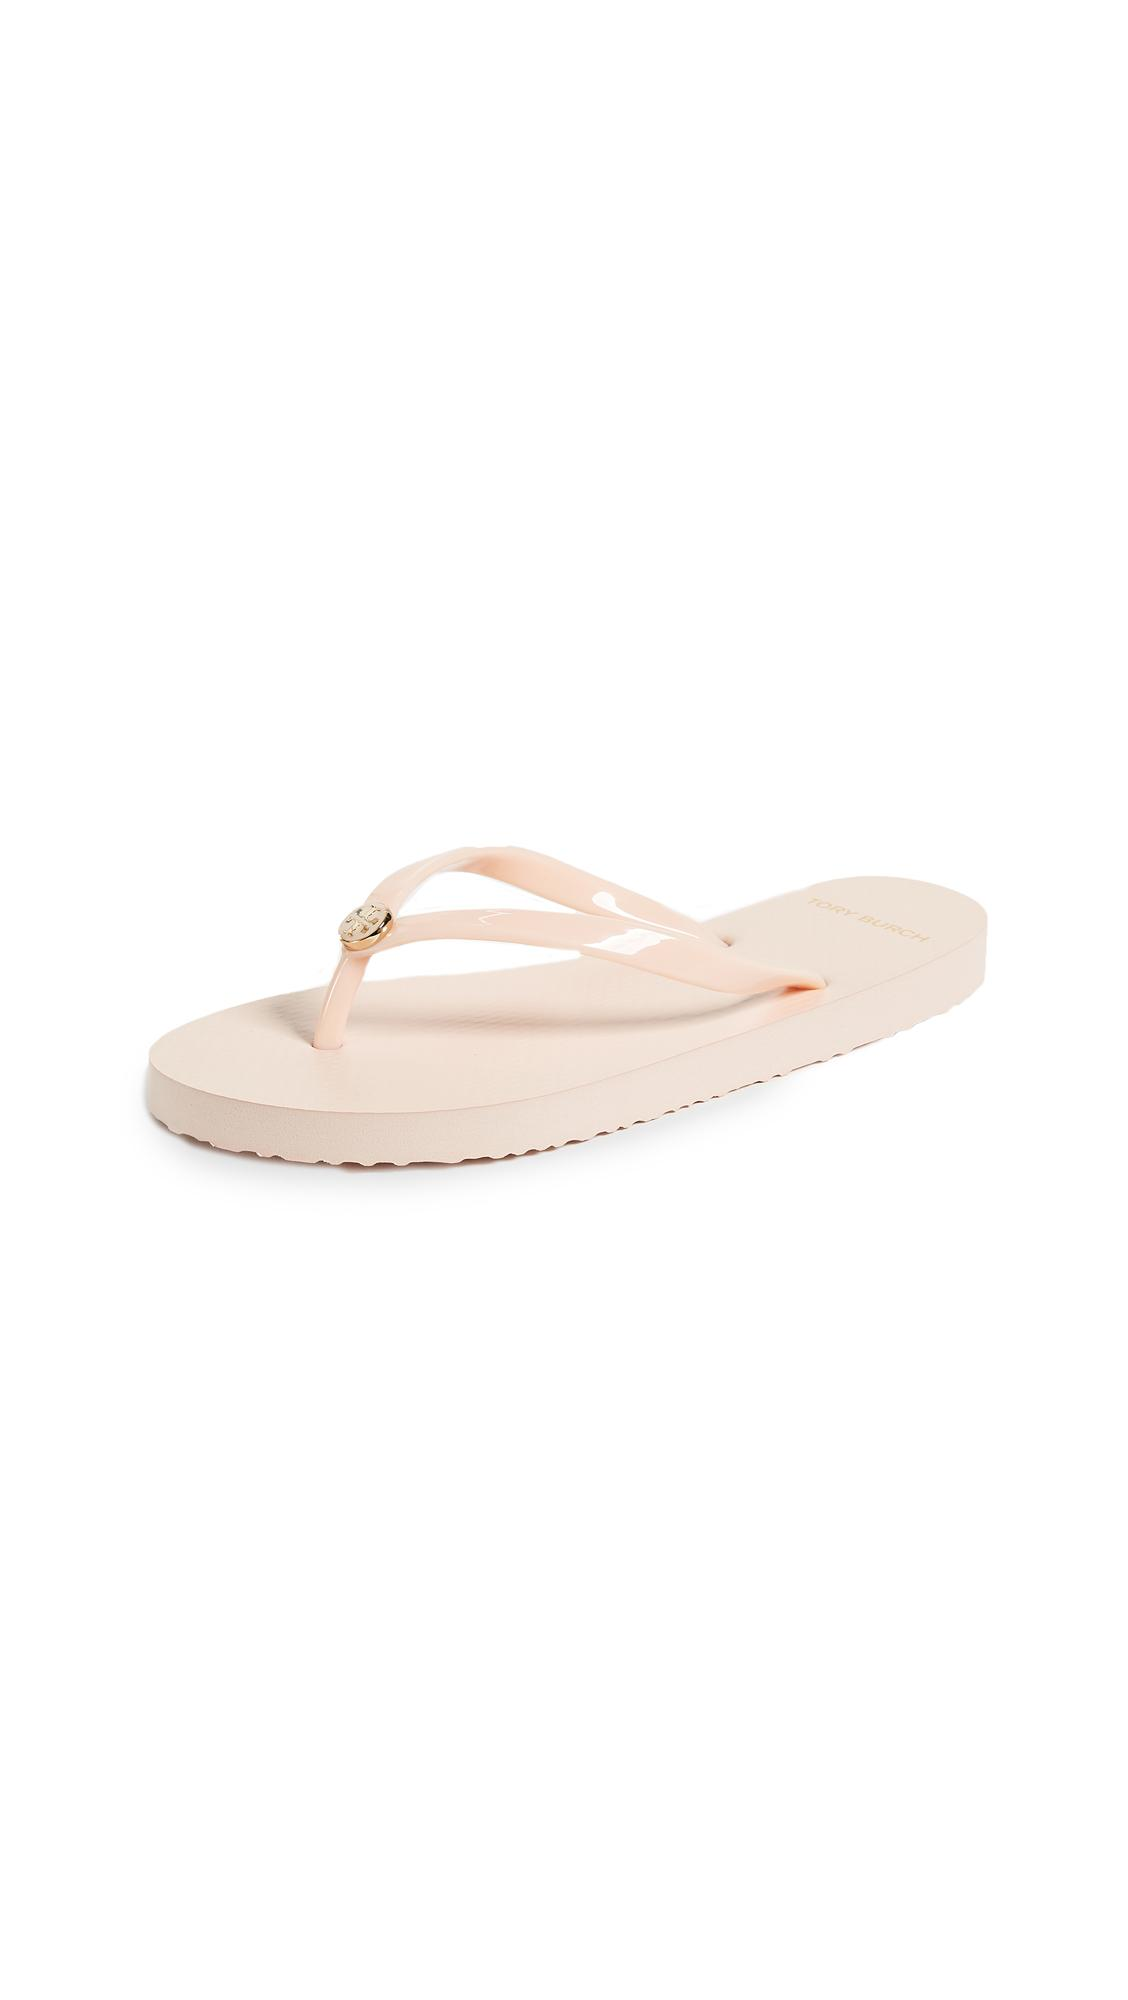 5f094cc44c79 Tory Burch Solid Thin Flip Flops In Perfect Blush